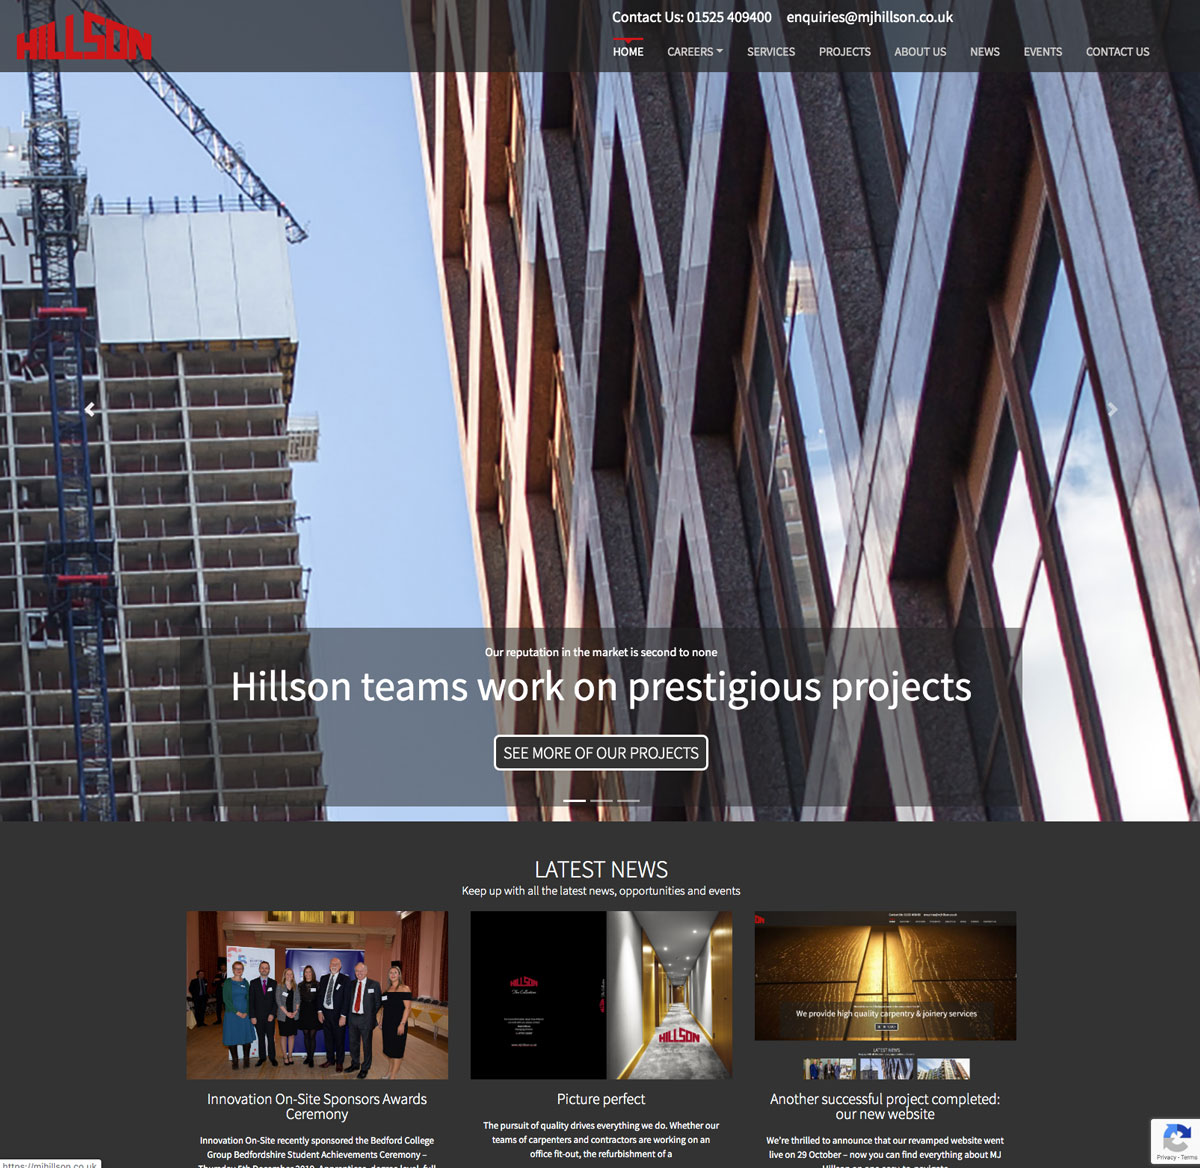 MJ Hillson website